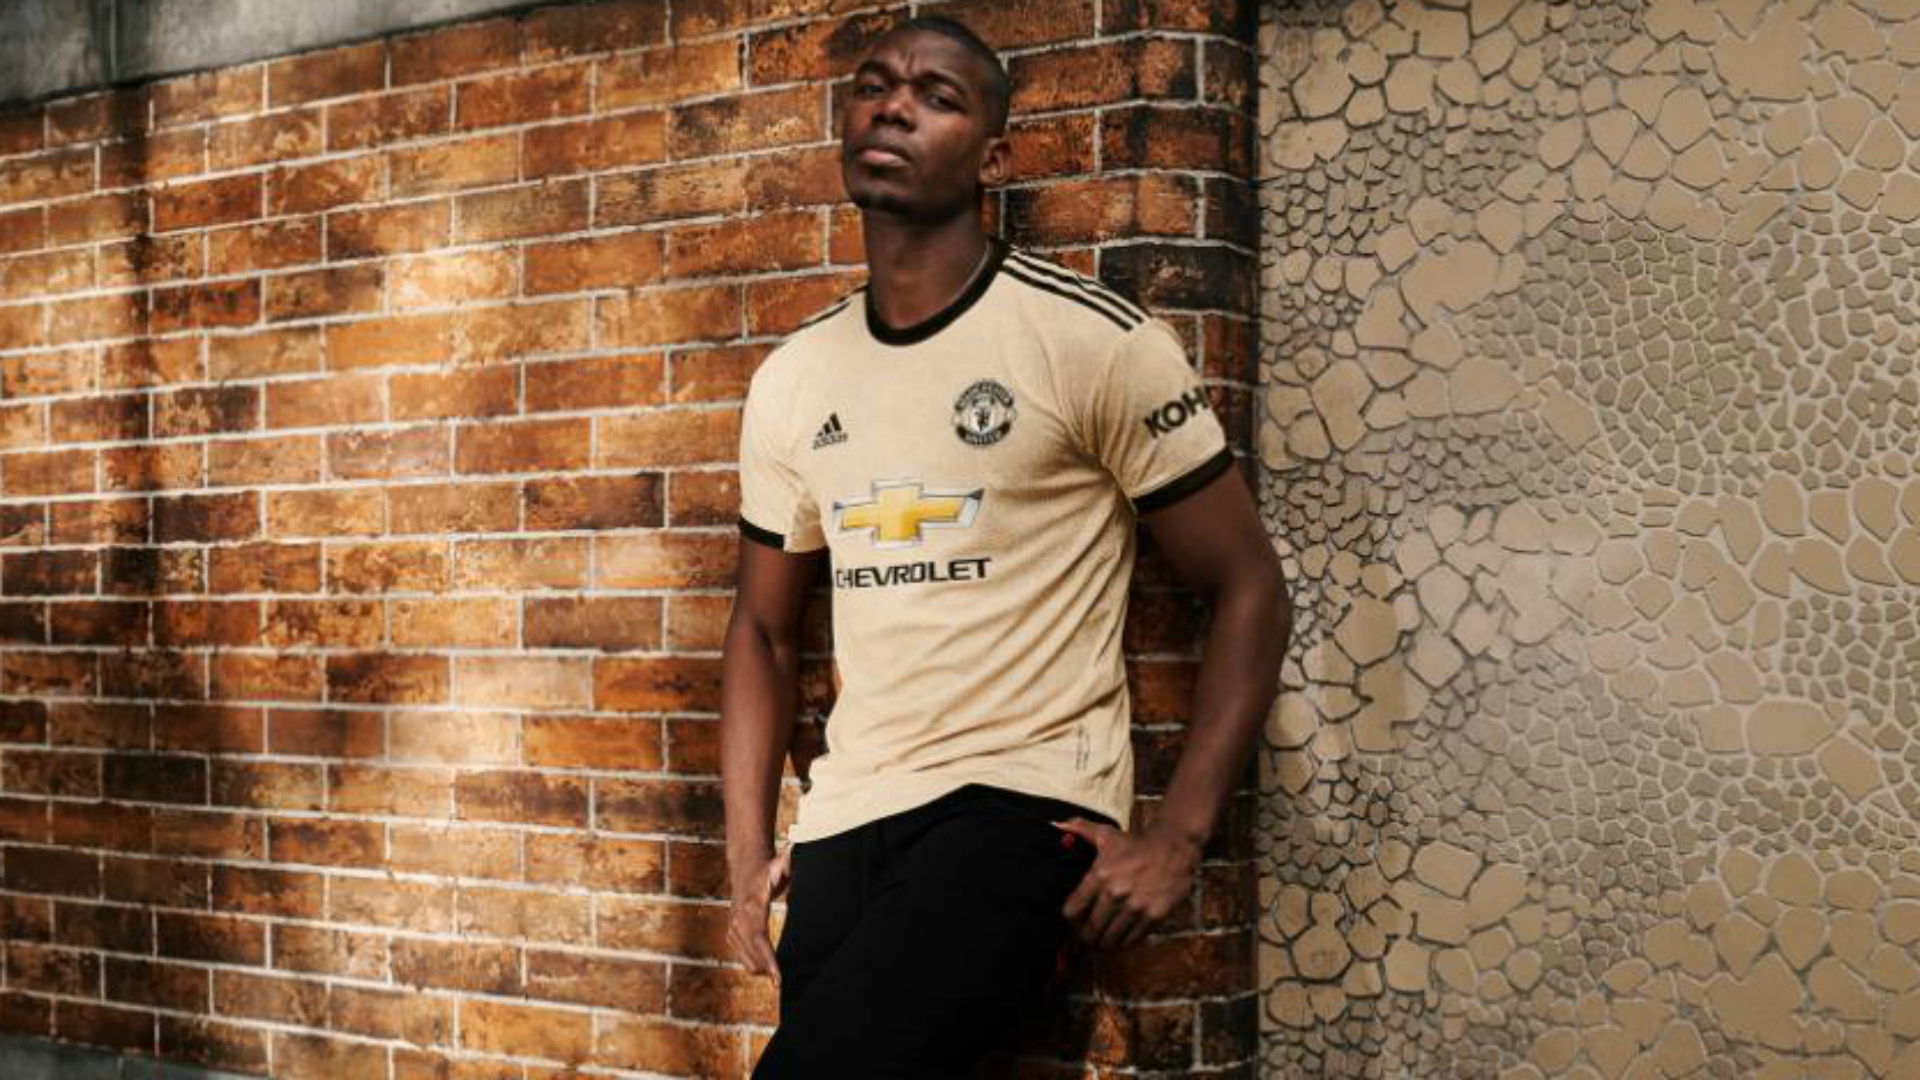 As talk continues over Paul Pogba's desire to leave Manchester United, the midfielder was still used for the launch of their new away kit.